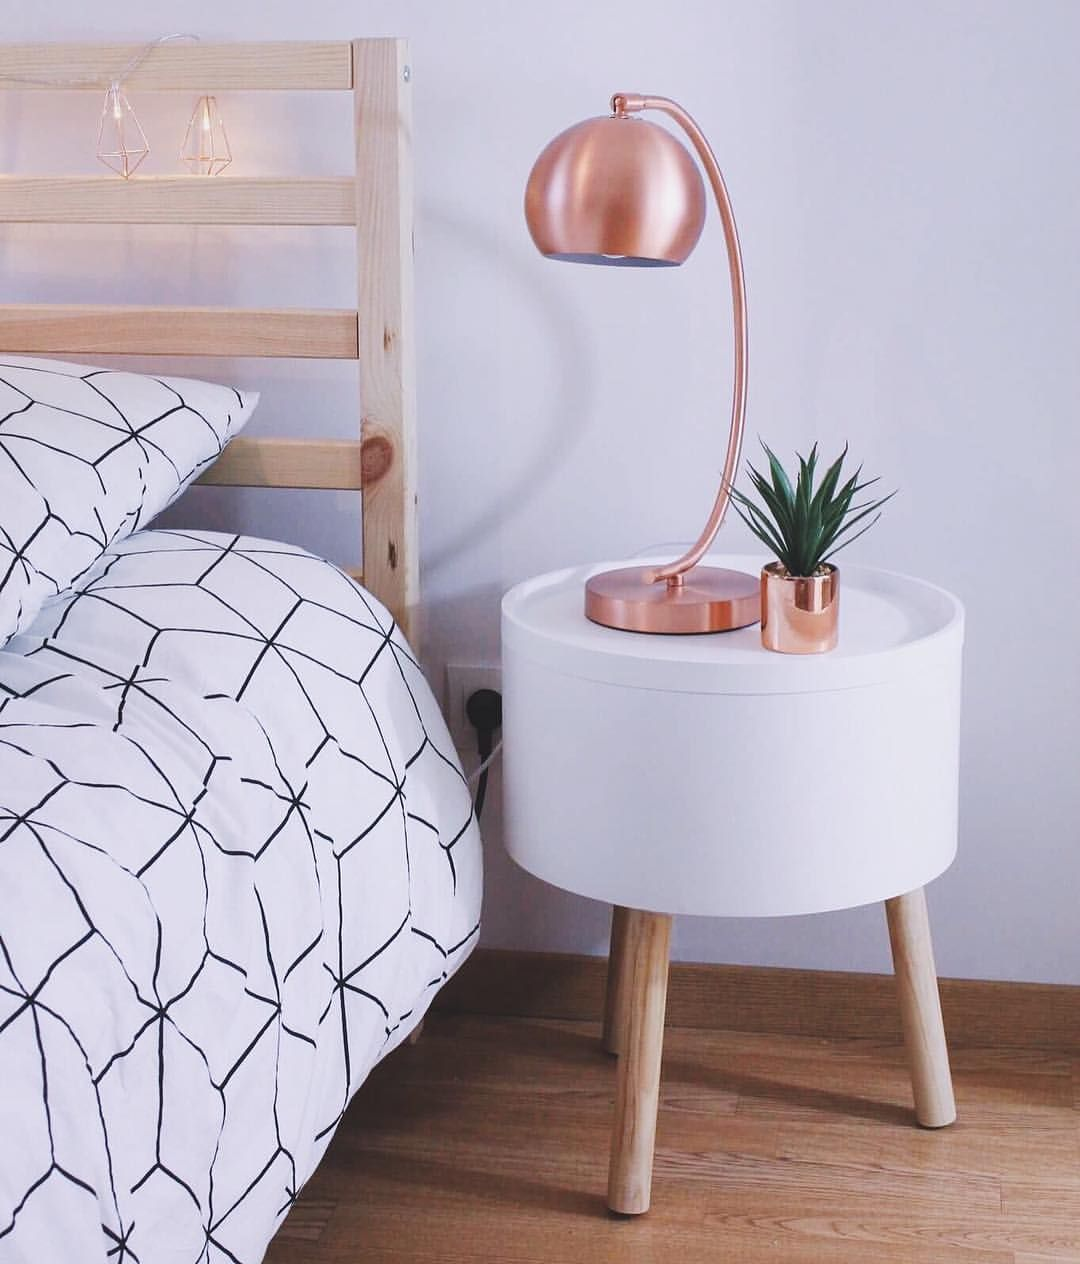 table de chevet night table copper cuivre lampe la redoute scandinave scandinavian lit. Black Bedroom Furniture Sets. Home Design Ideas